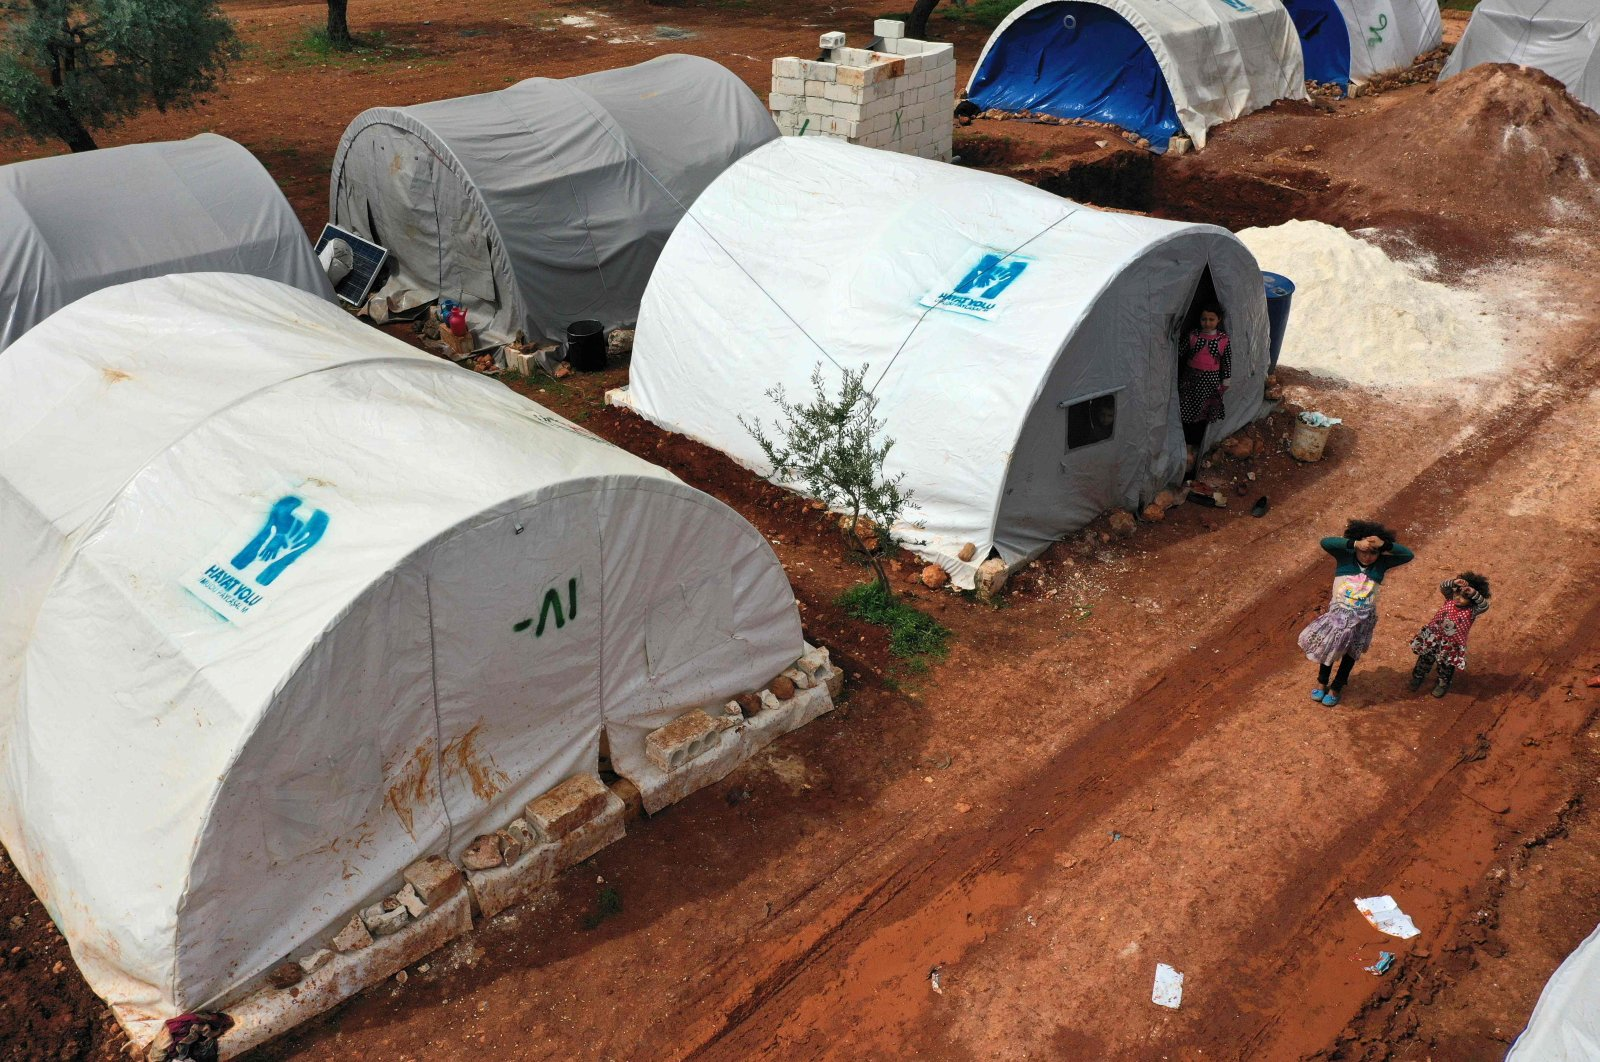 This picture taken on April 5, 2020 shows an aerial view of a camp for displaced Syrians from Idlib and Aleppo provinces, near the town of Maaret Misrin in Syria's northwestern Idlib province. (AFP Photo)